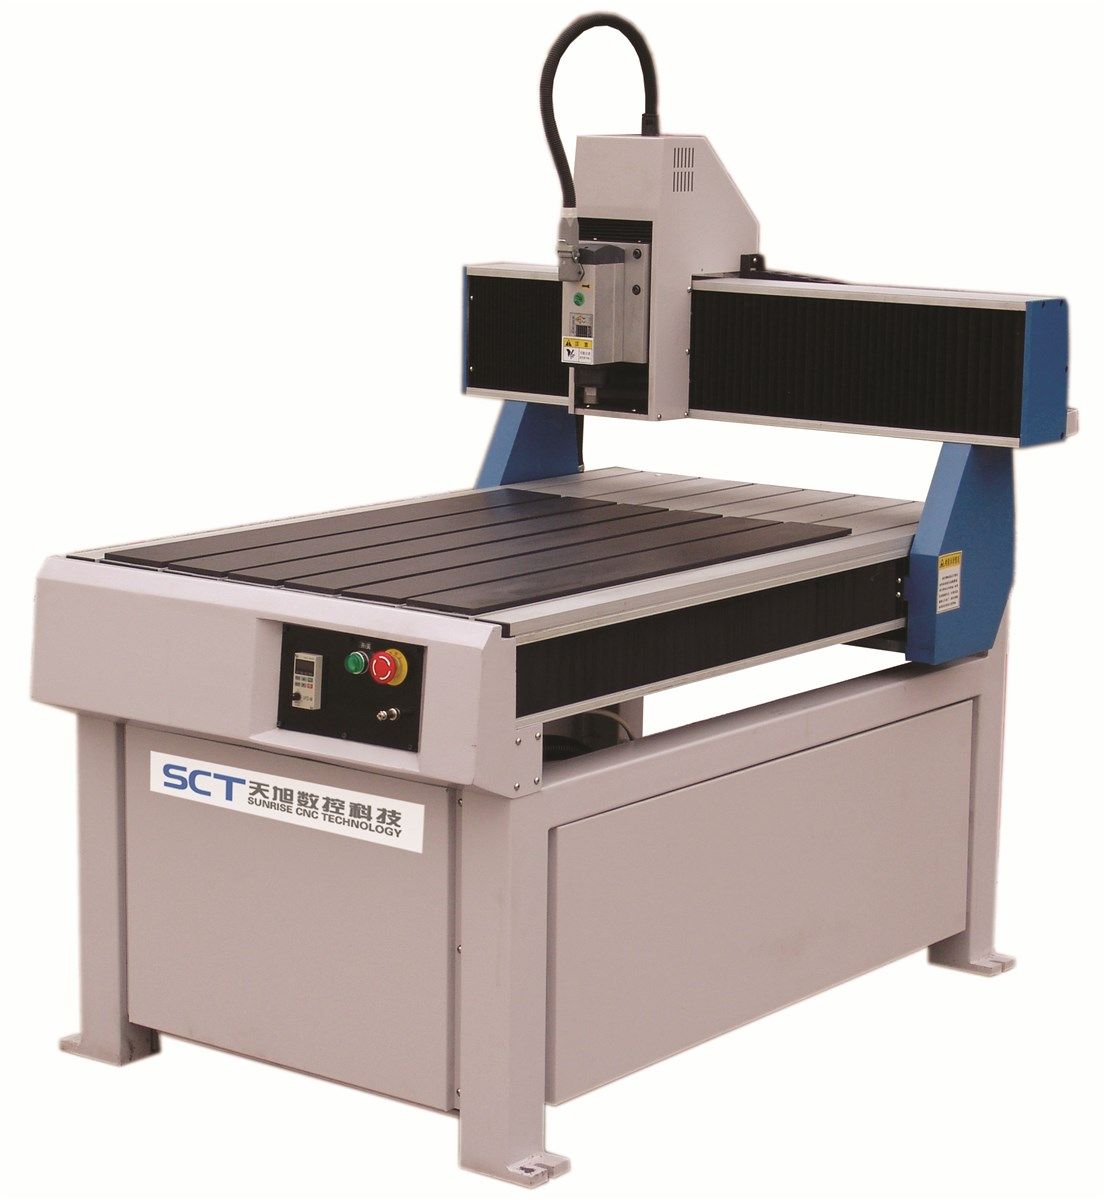 SCT-B6090 Sign Making Popular Classical Advertising CNC Router